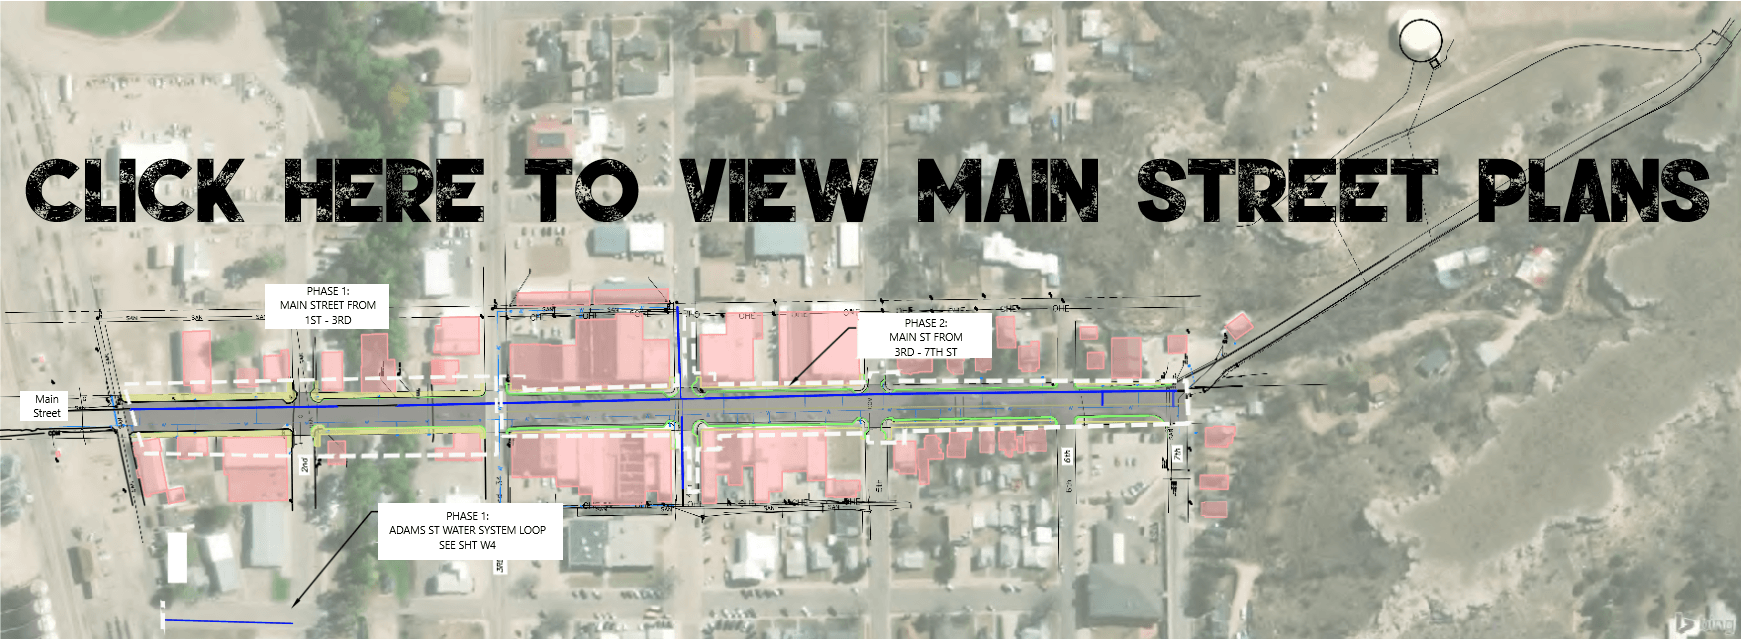 Main Street Plans_Overview Opens in new window